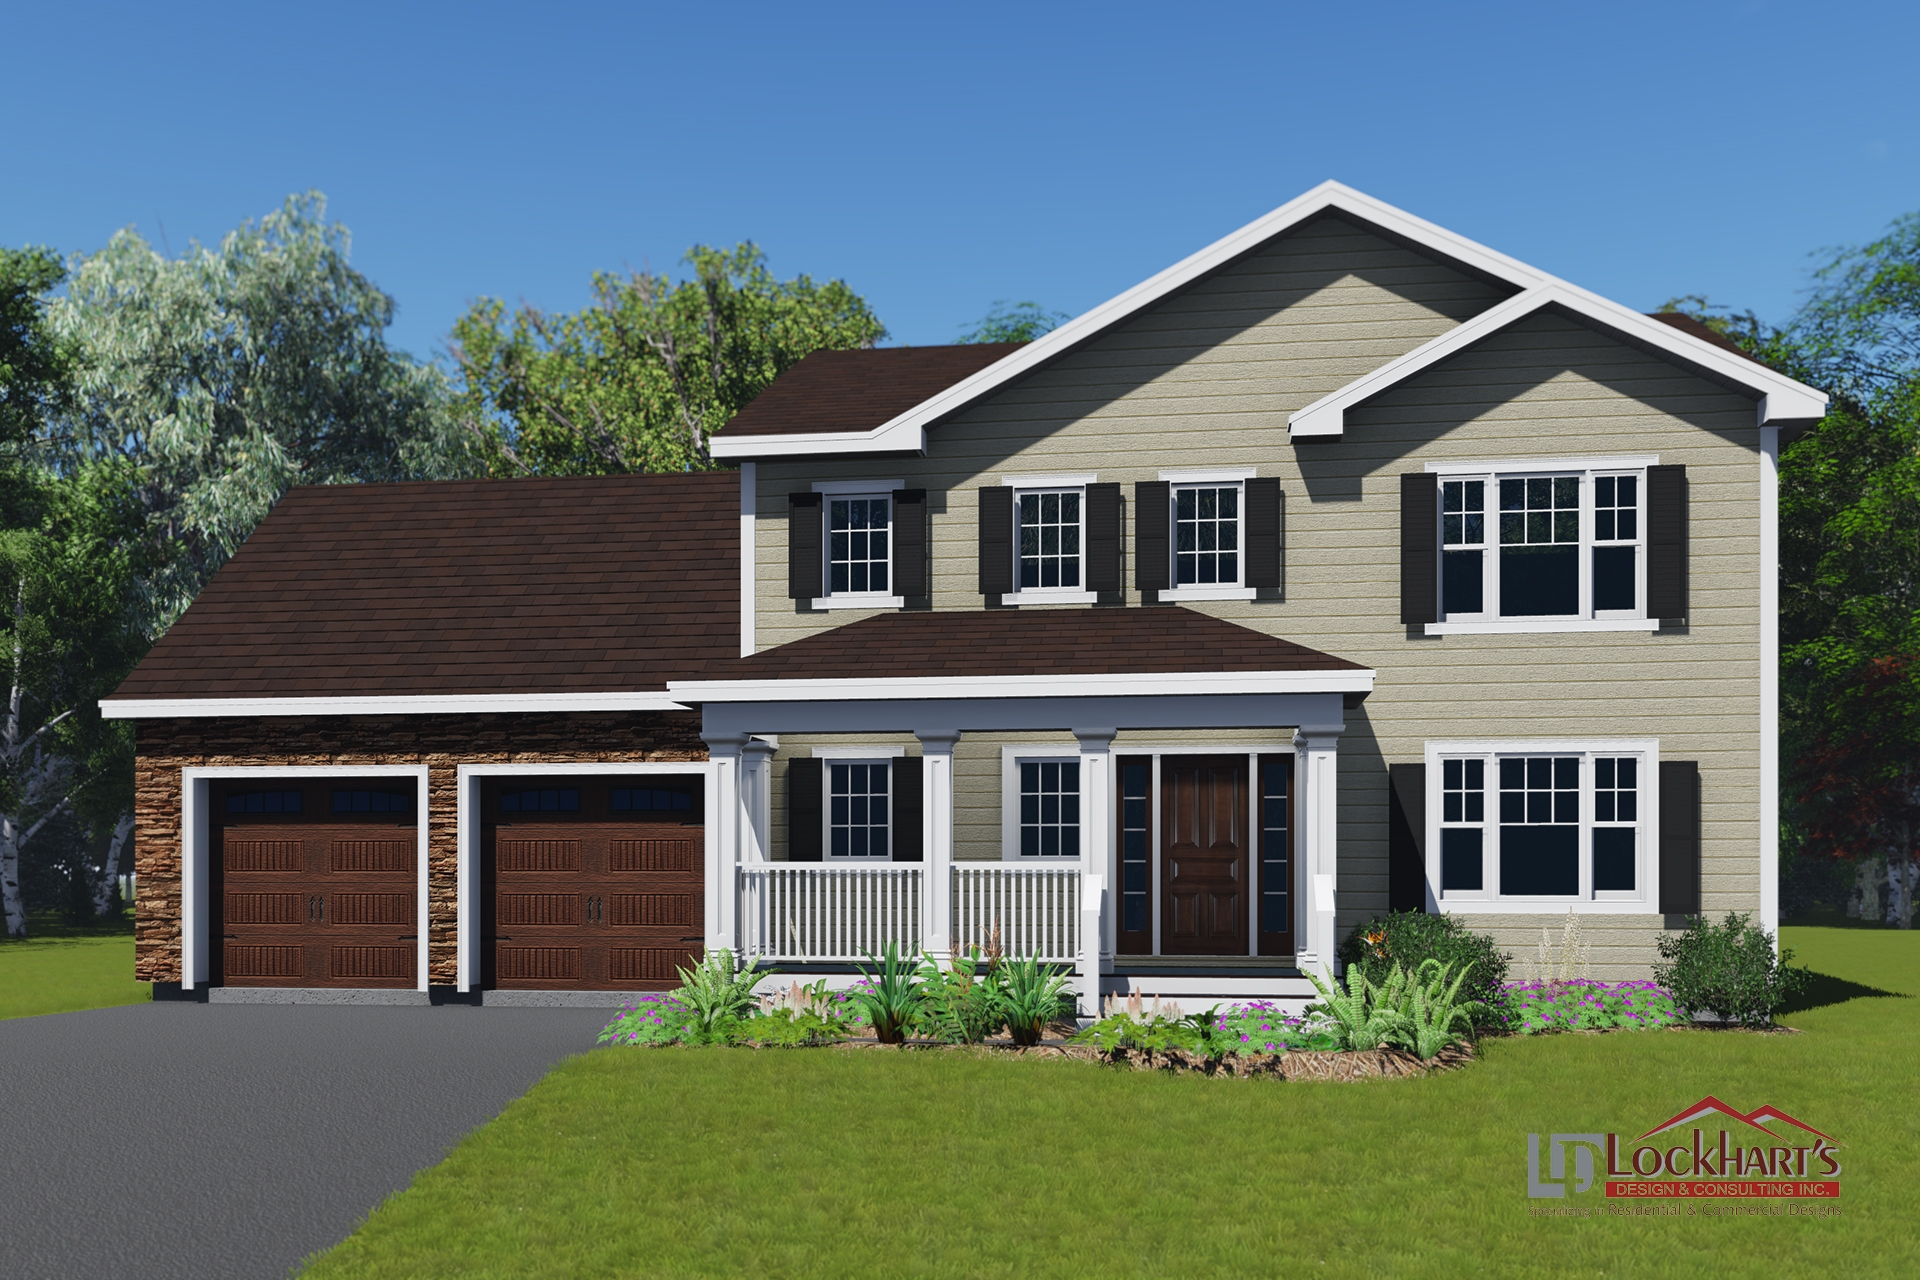 Lockhart's Design House Plan 1121 - Eclipse